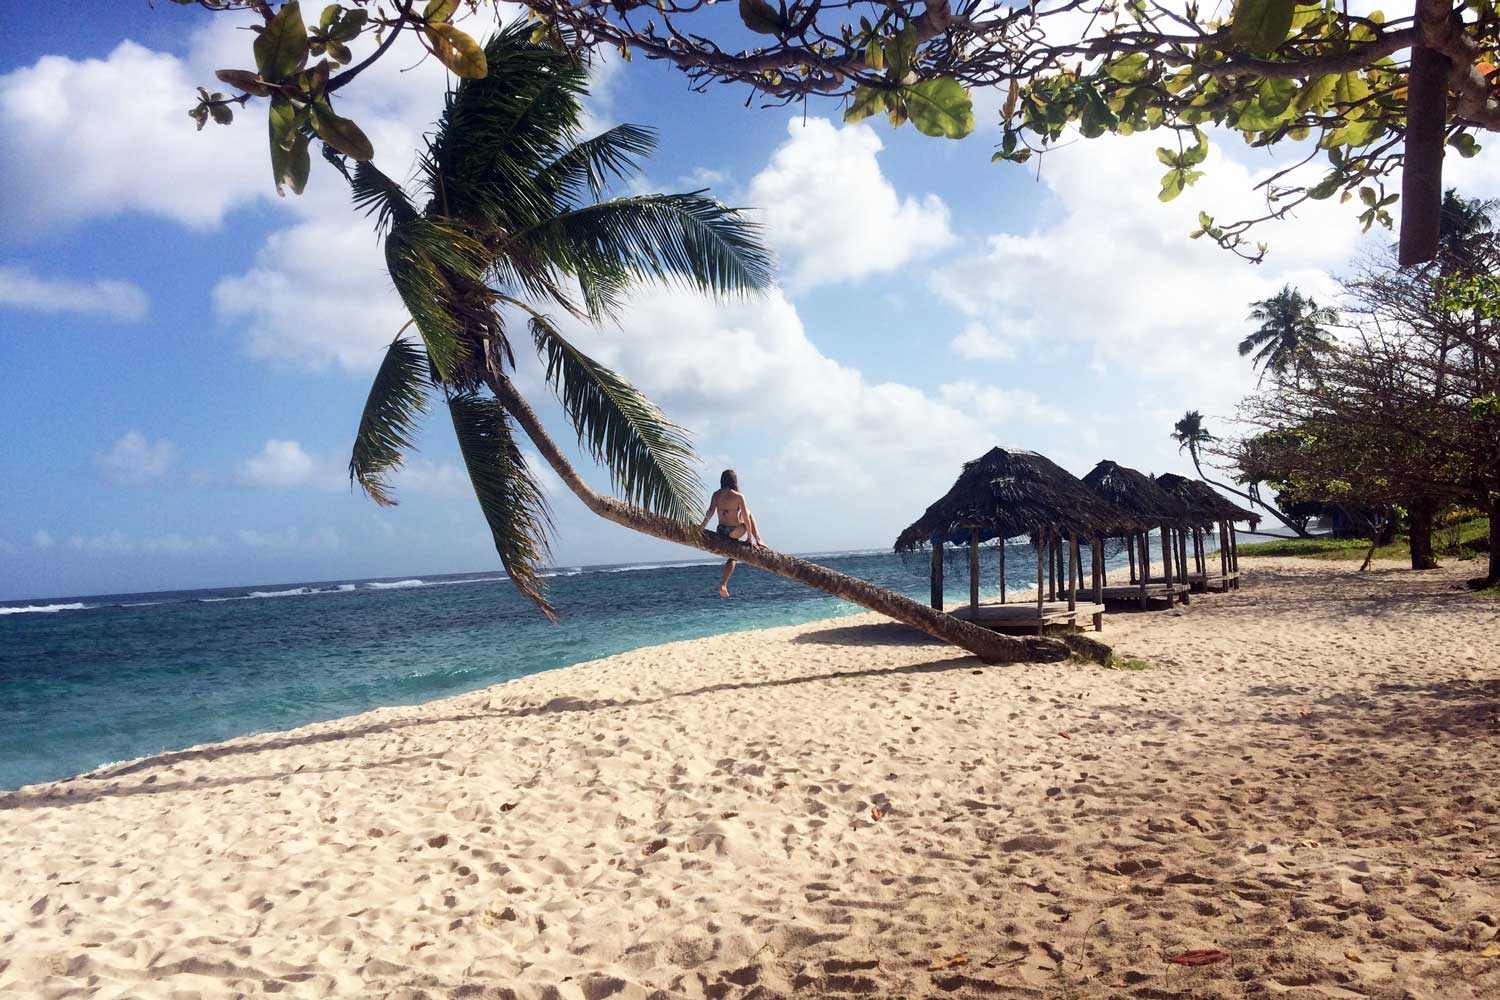 South Pacific Island Vacation destinations - Samoa